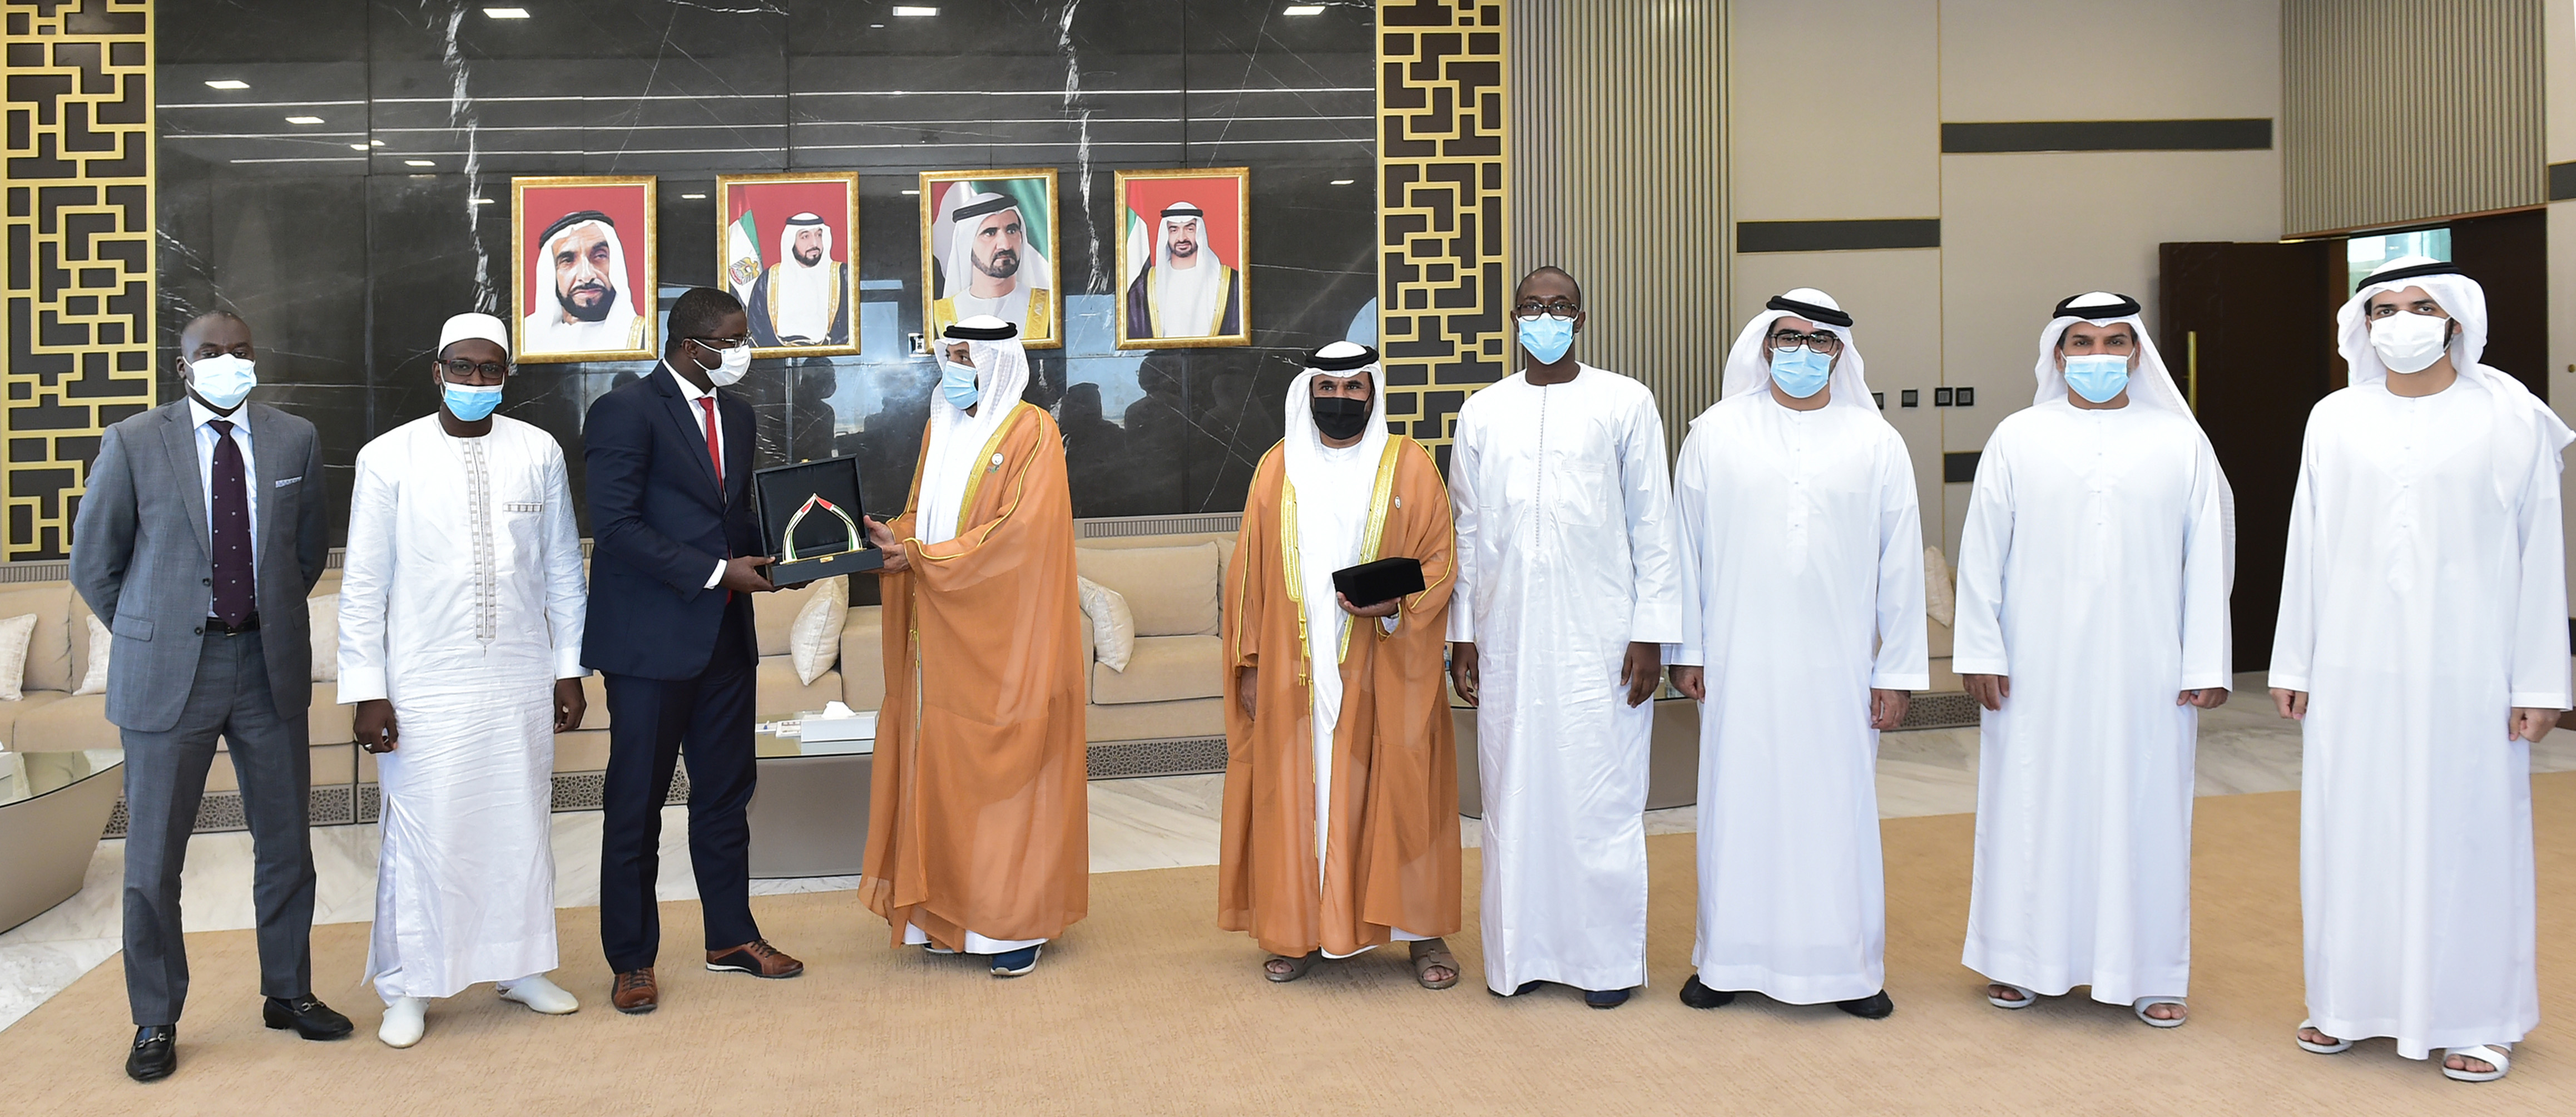 The Senegalese delegation visits Awqaf and discusses ways to promote cooperation